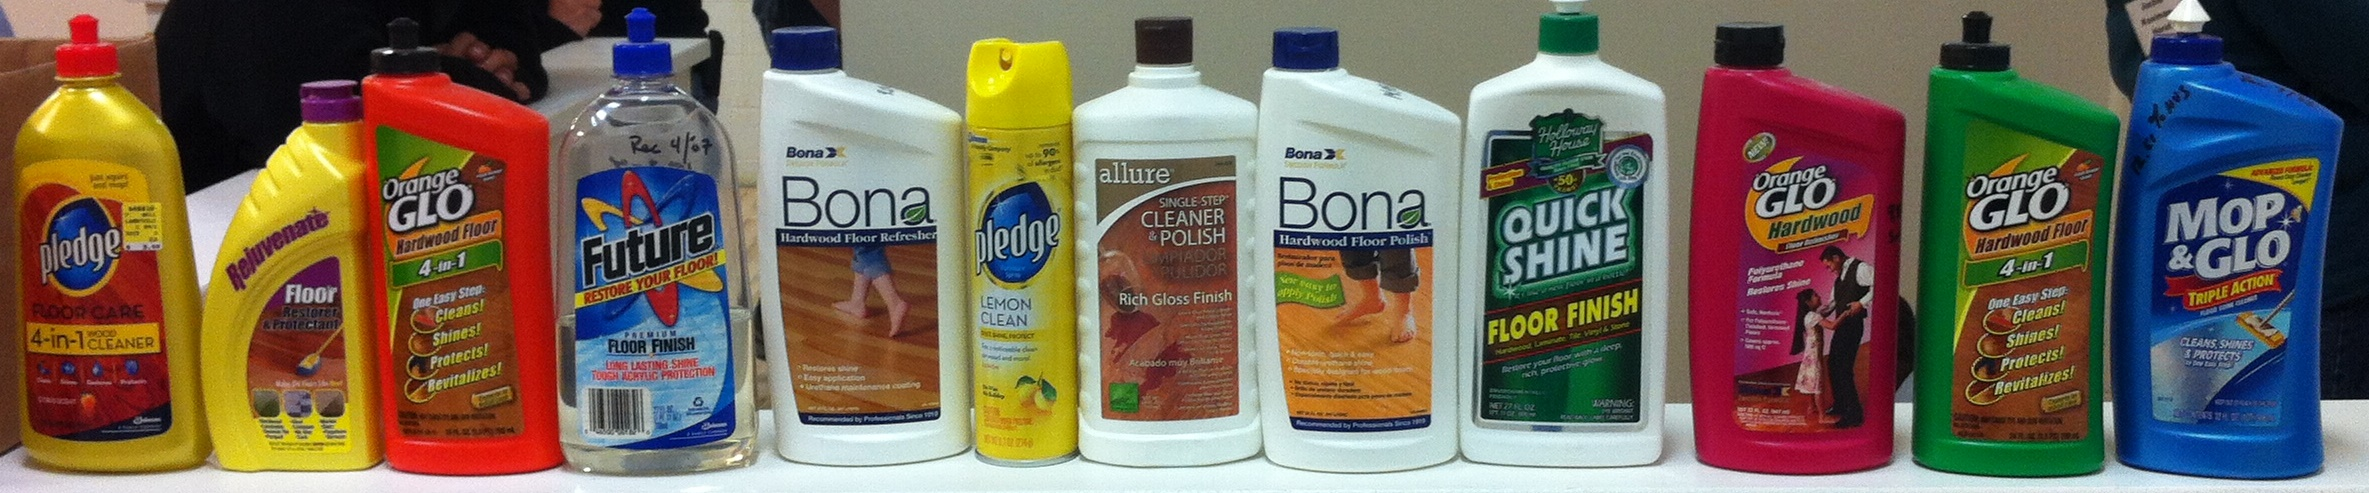 Products to Avoid because they can leave behind a residue